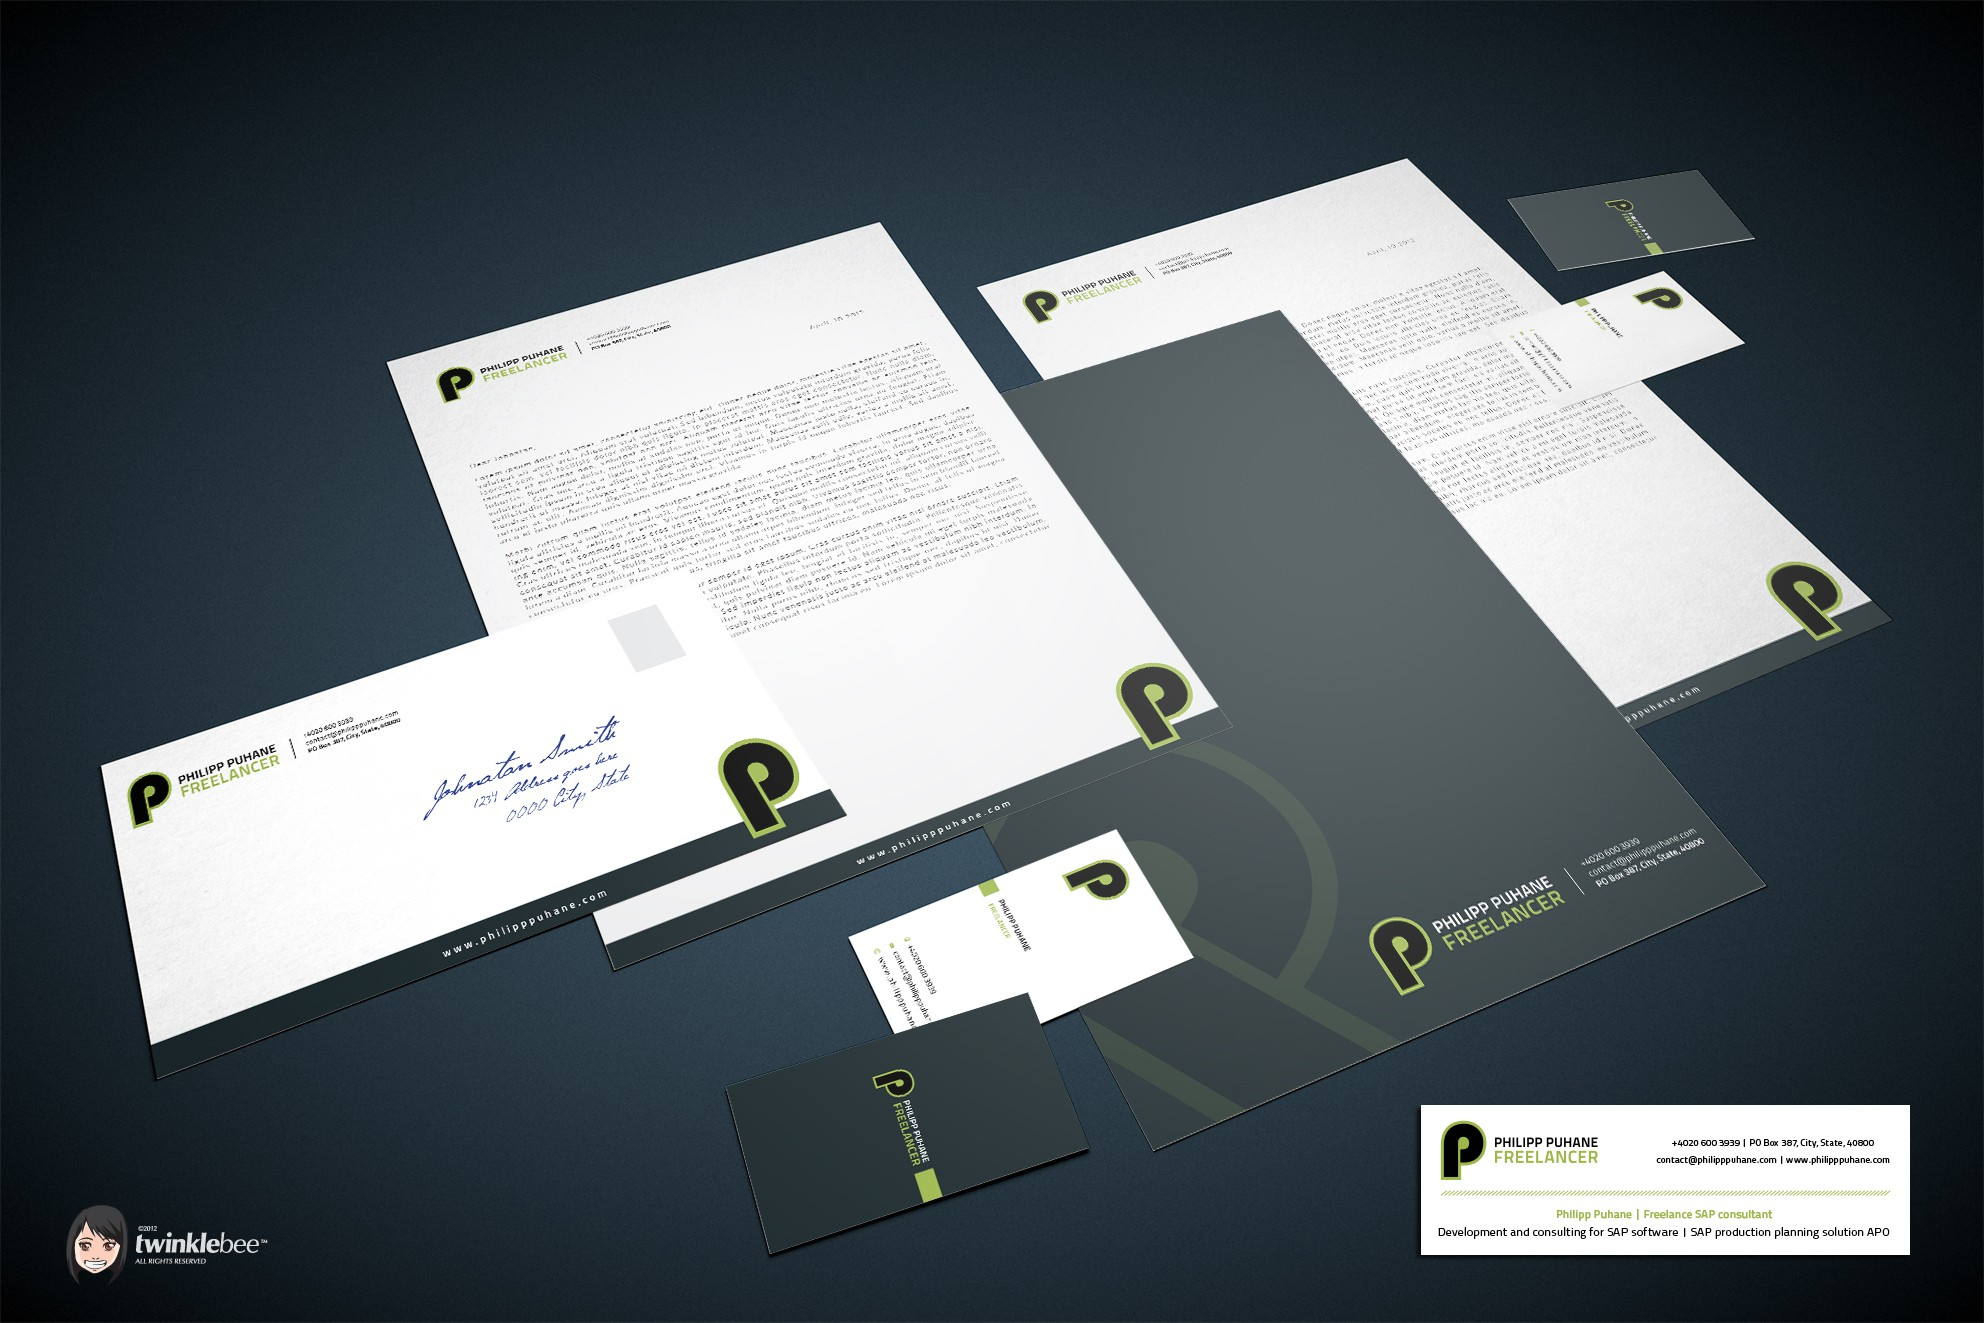 Freelance SAP consultant needs design for business card, stationery and E-Mail signature